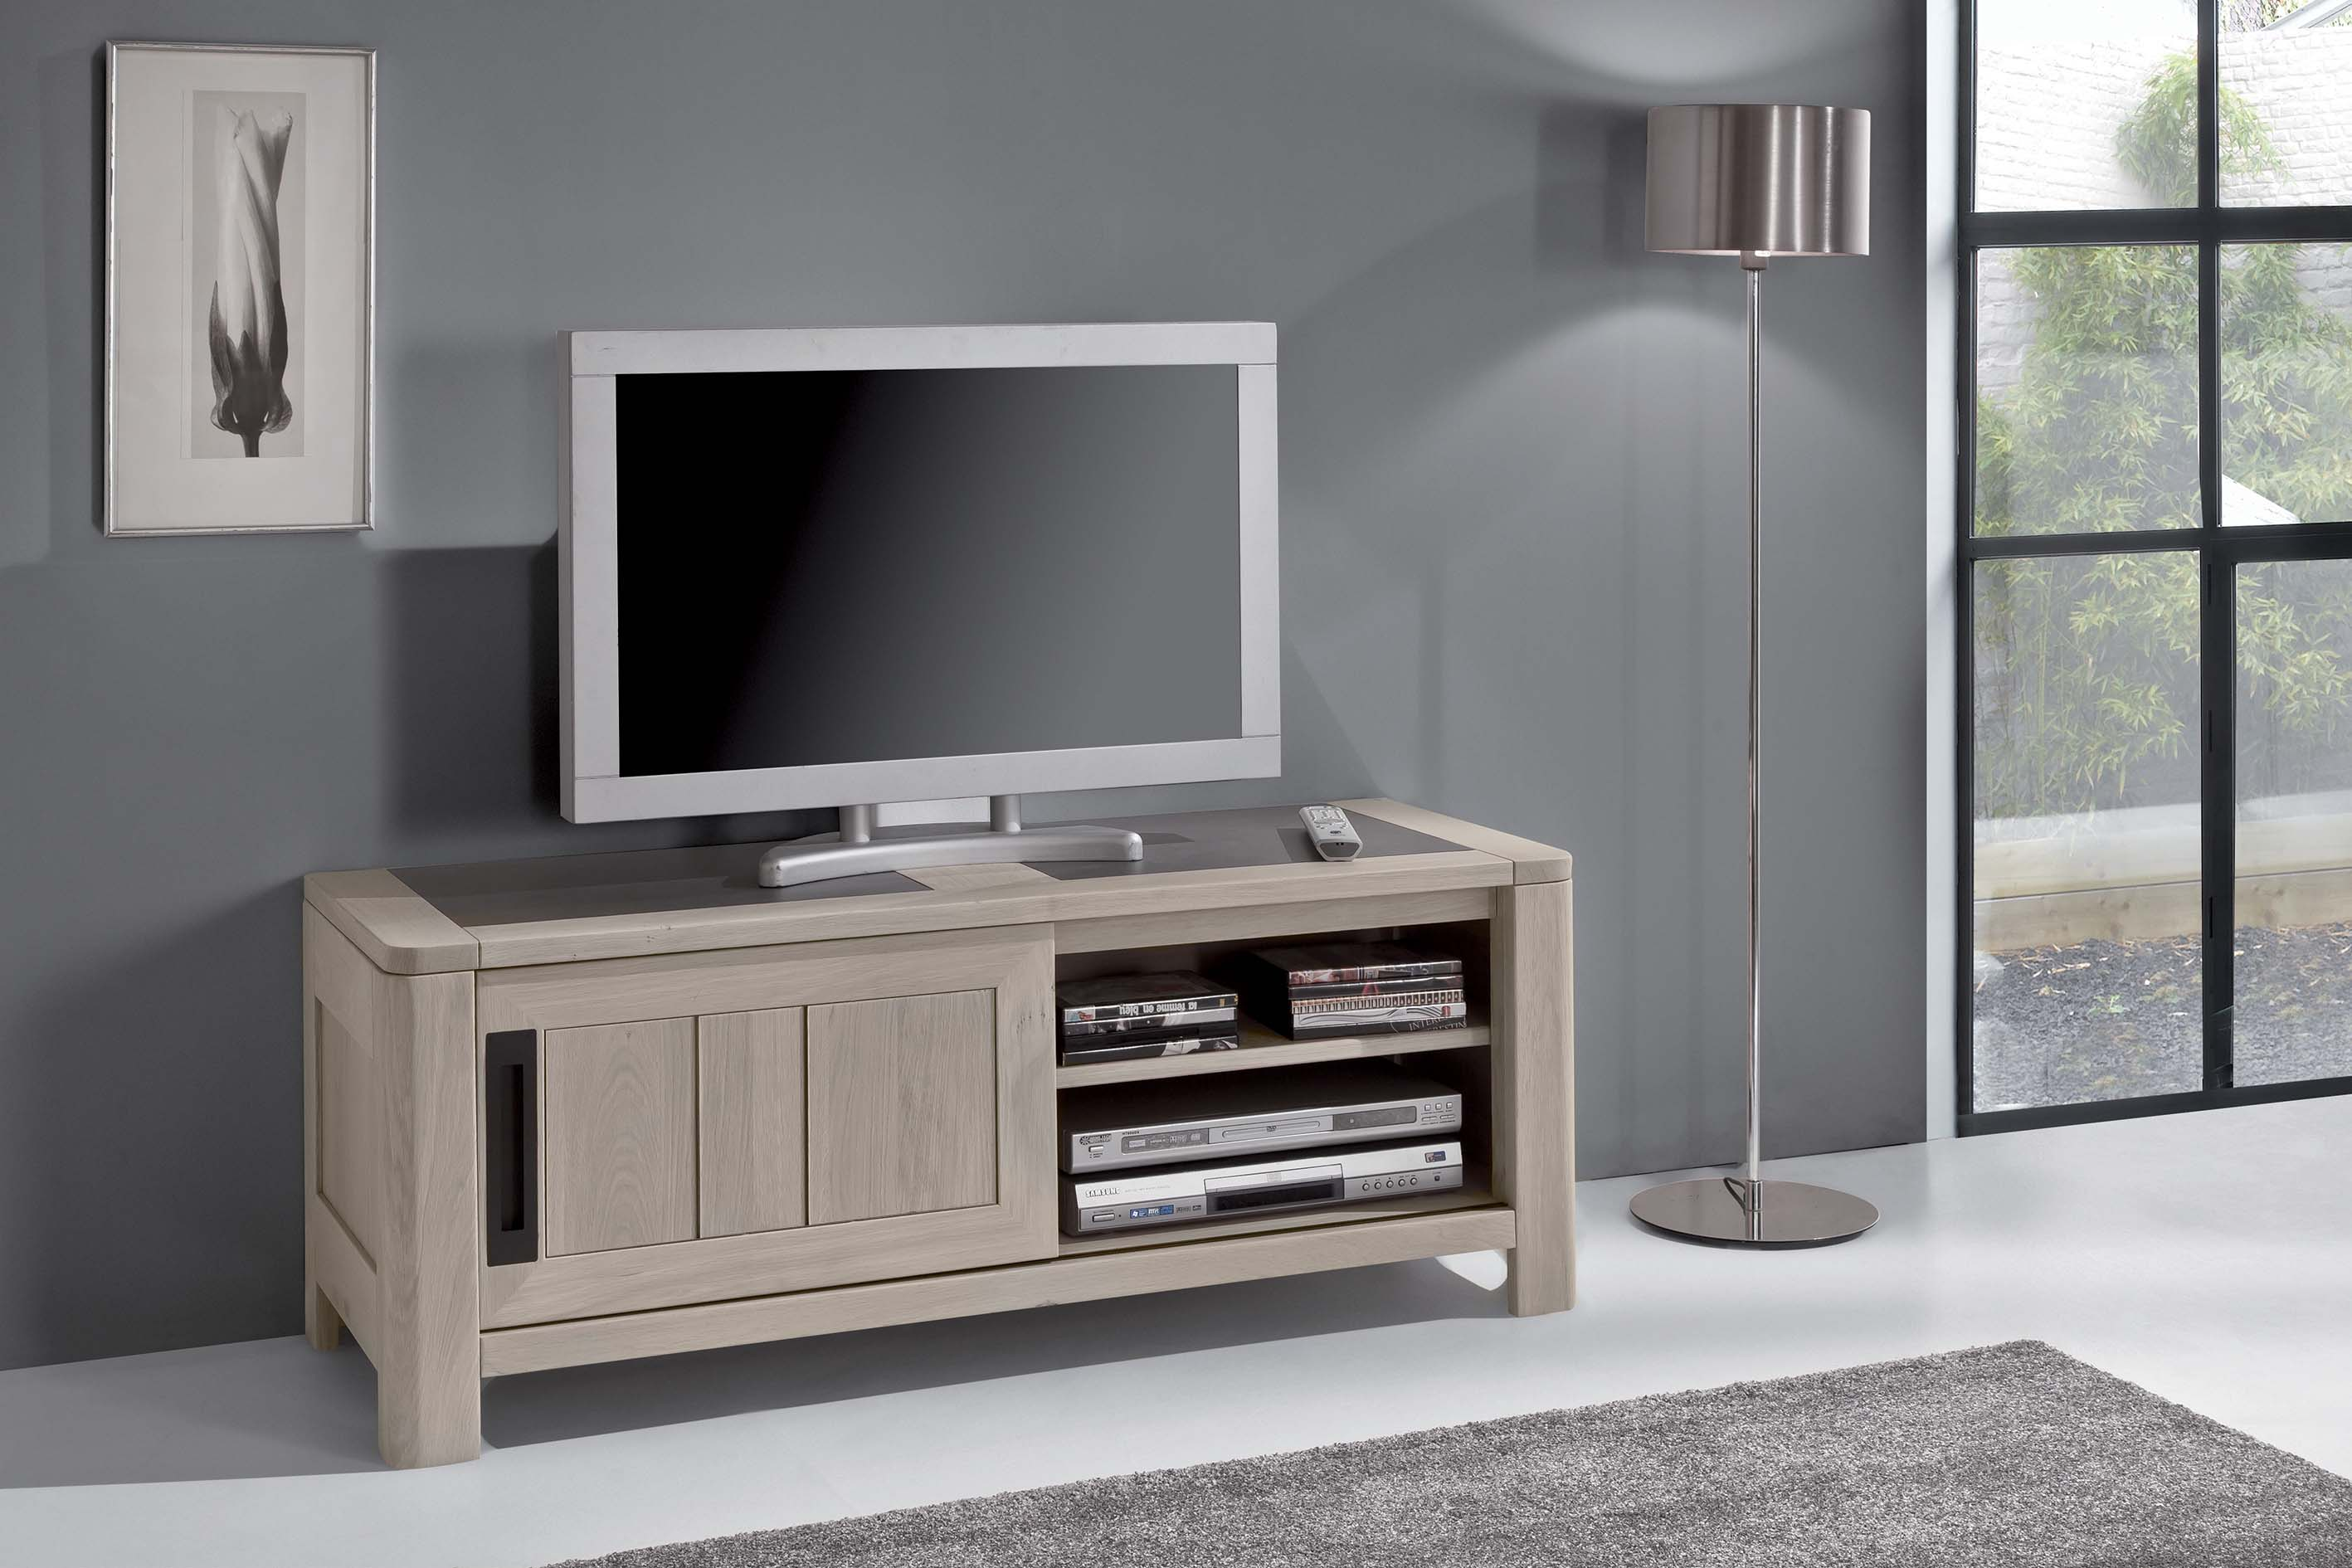 petit meuble tv en ch ne massif de france meubles turone. Black Bedroom Furniture Sets. Home Design Ideas